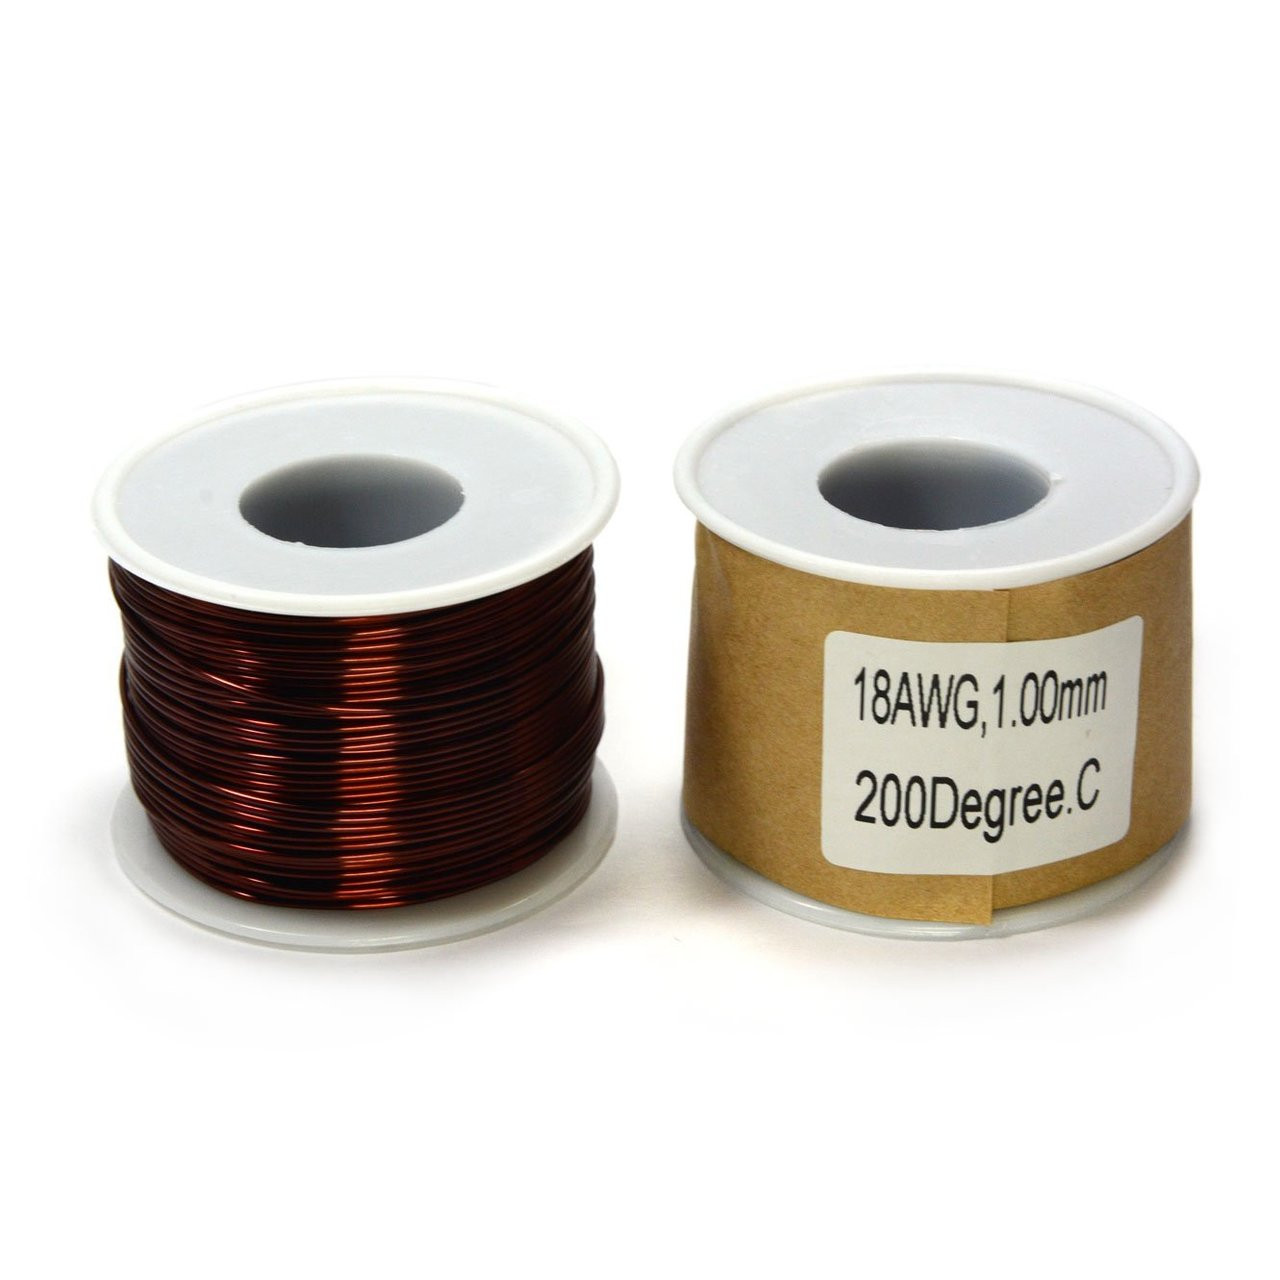 21 awg magnet wire wire center magnet wire 1lb spool of 18 awg magnet wire mw 18awg 1 rh magnet4sale com 12 awg copper wire awg wire gauge thickness chart greentooth Choice Image